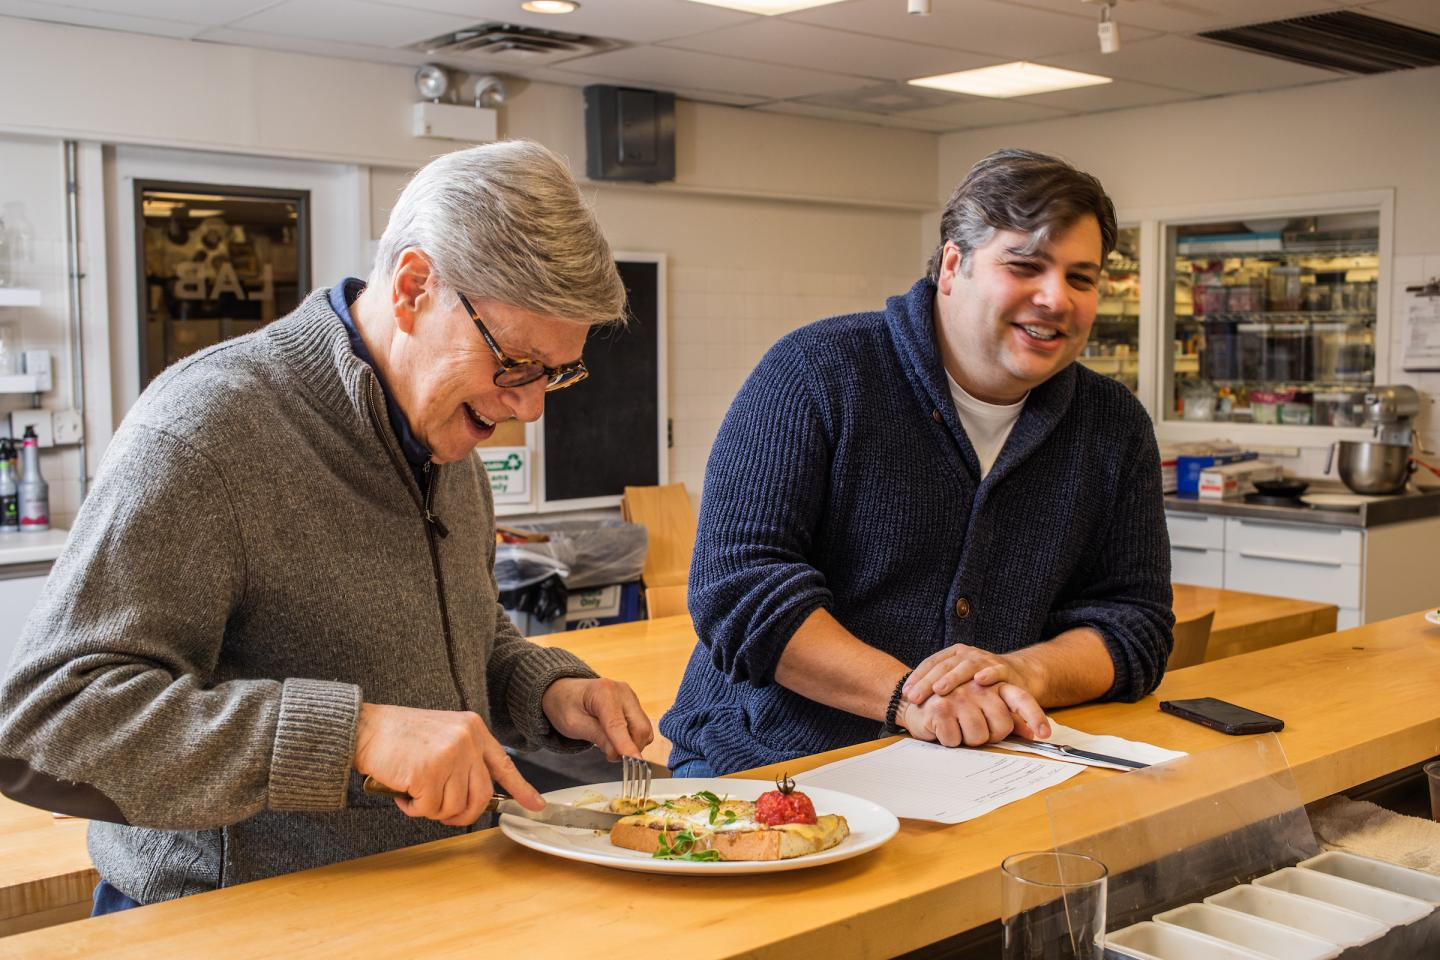 LEYE Found Rich Melman and President R.J. Melman Doing a Tasting in the Test Kitchen